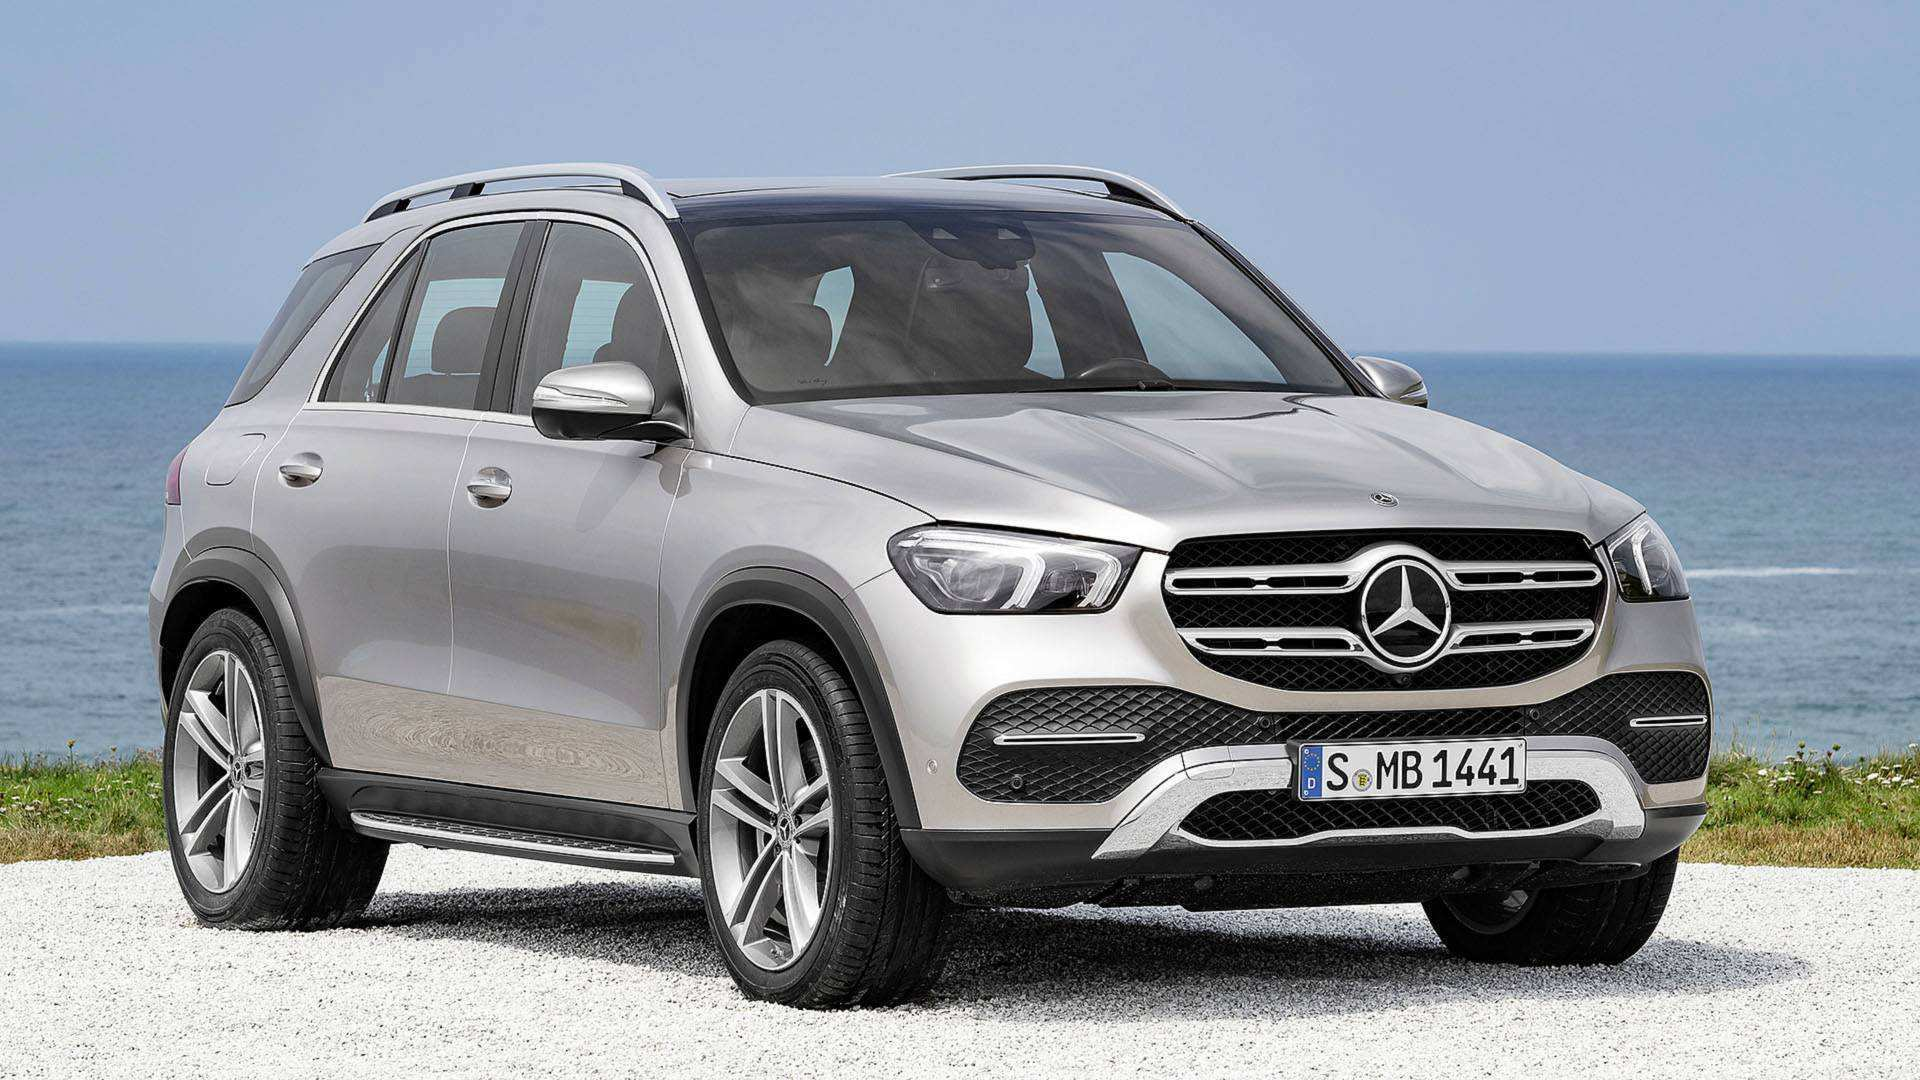 94 Concept of Mercedes Benz Gle 2020 Launch Date Research New with Mercedes Benz Gle 2020 Launch Date